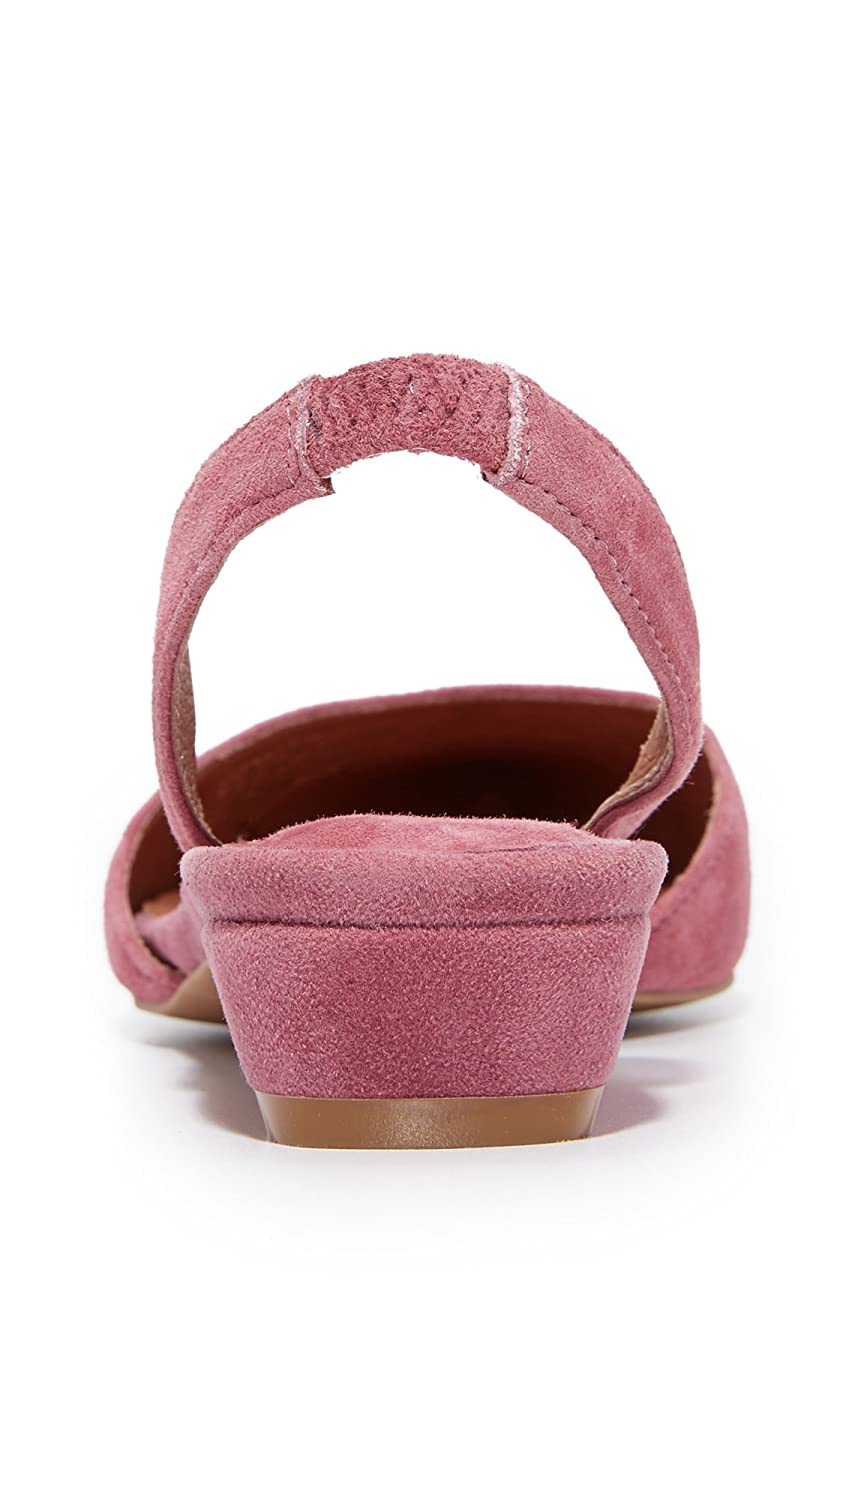 Jeffrey Campbell Women's Shree Suede Flats B071G3NGBT 6 B(M) US|Dusty Rose Pink